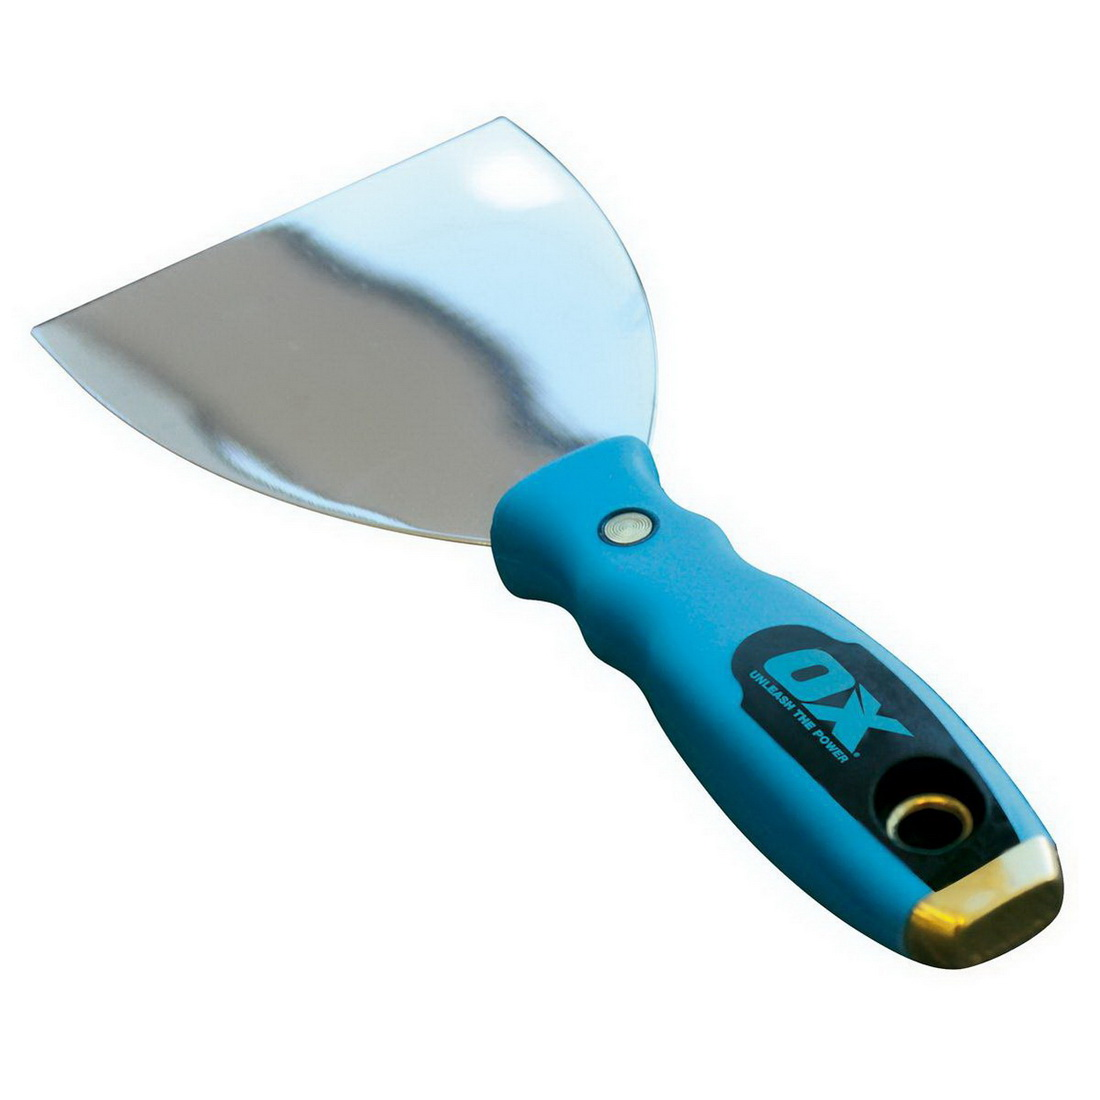 Professional 50 x 50mm Stainless Steel Joint Knife